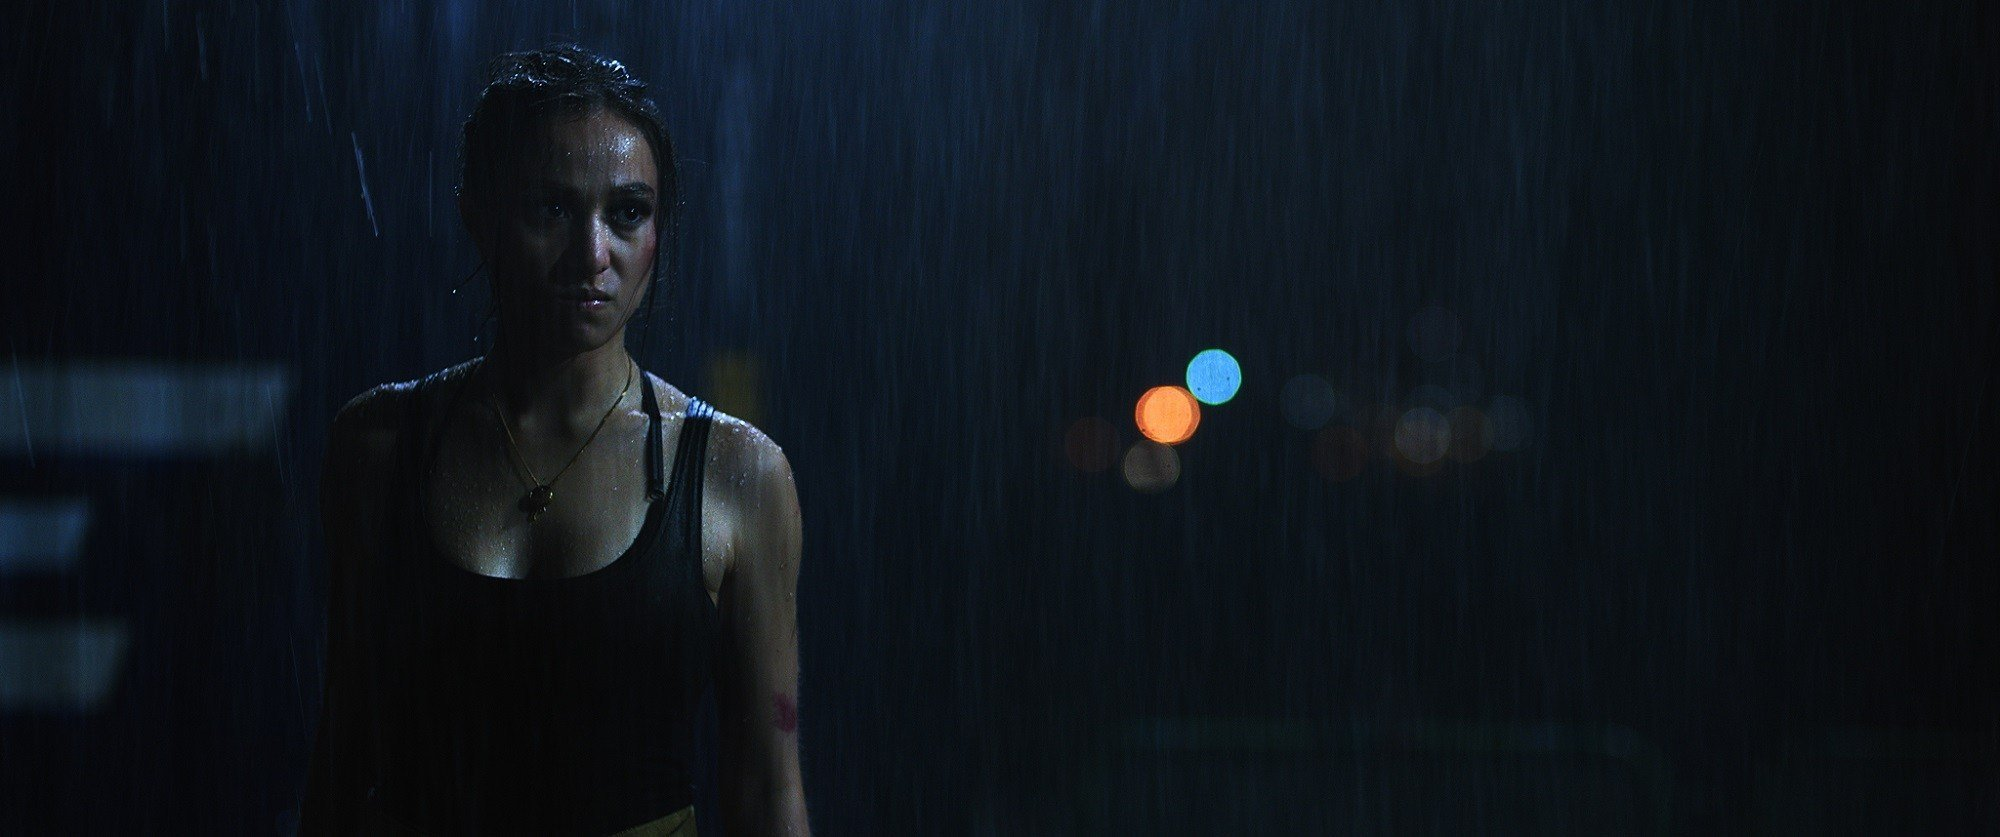 Maria Netflix [2019] Review - Another soulless fillipino